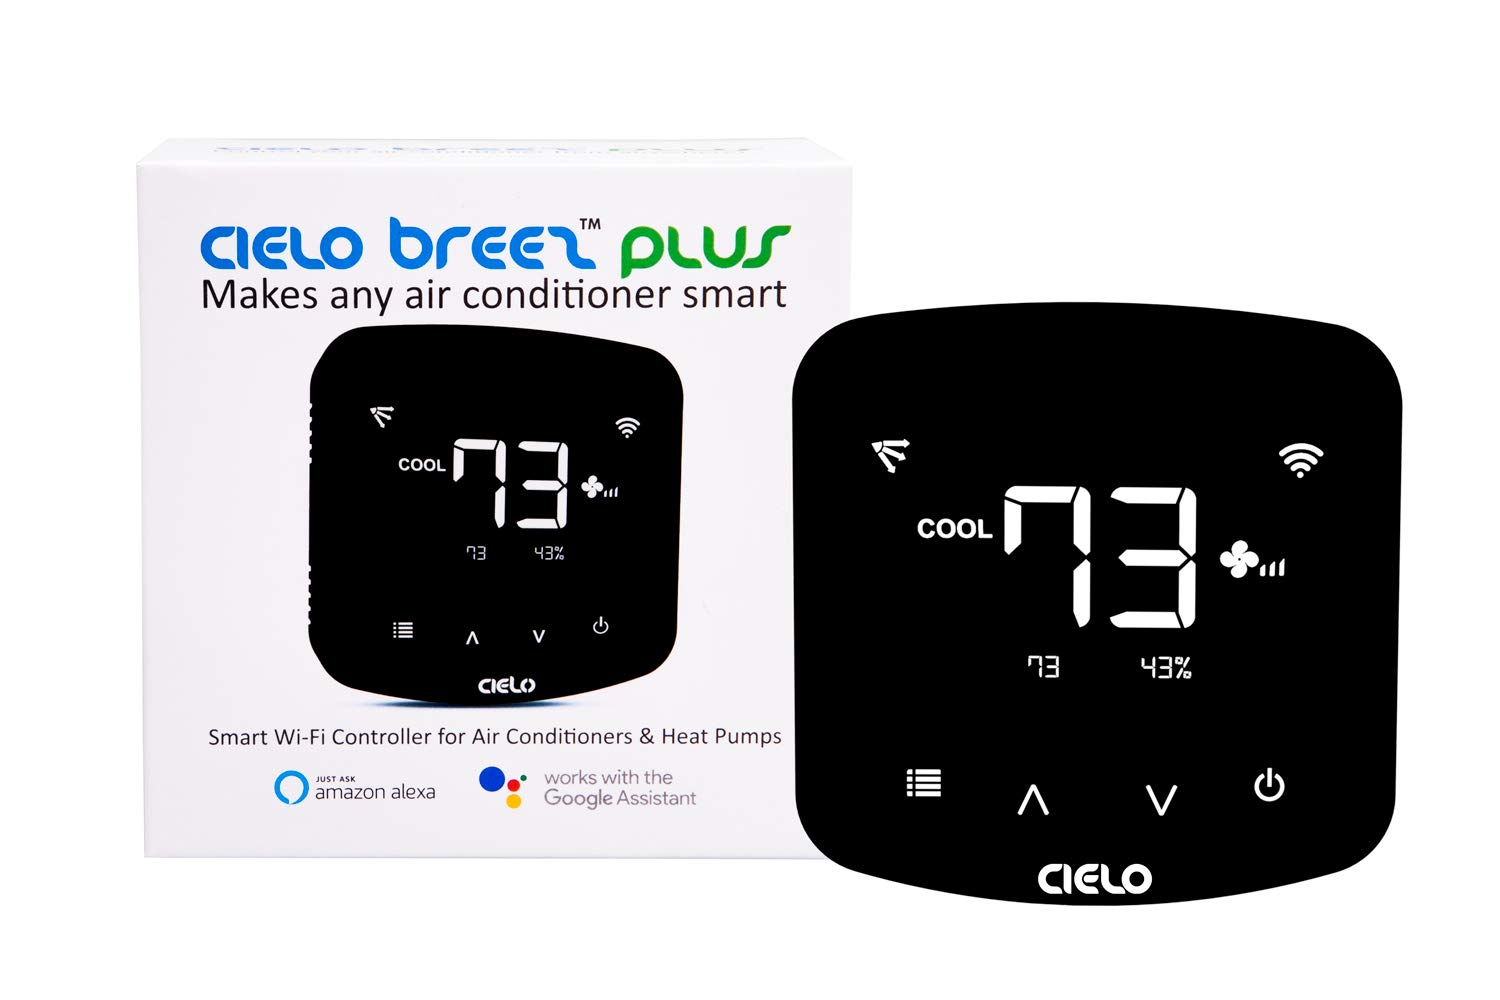 Cielo Breez Plus, Smart Air Conditioner Remote Controller | WiFi Enabled, works with Amazon Alexa & Google Home, iOS, Android & Web | Power up through 24V OR using 5V adapter that comes in the box